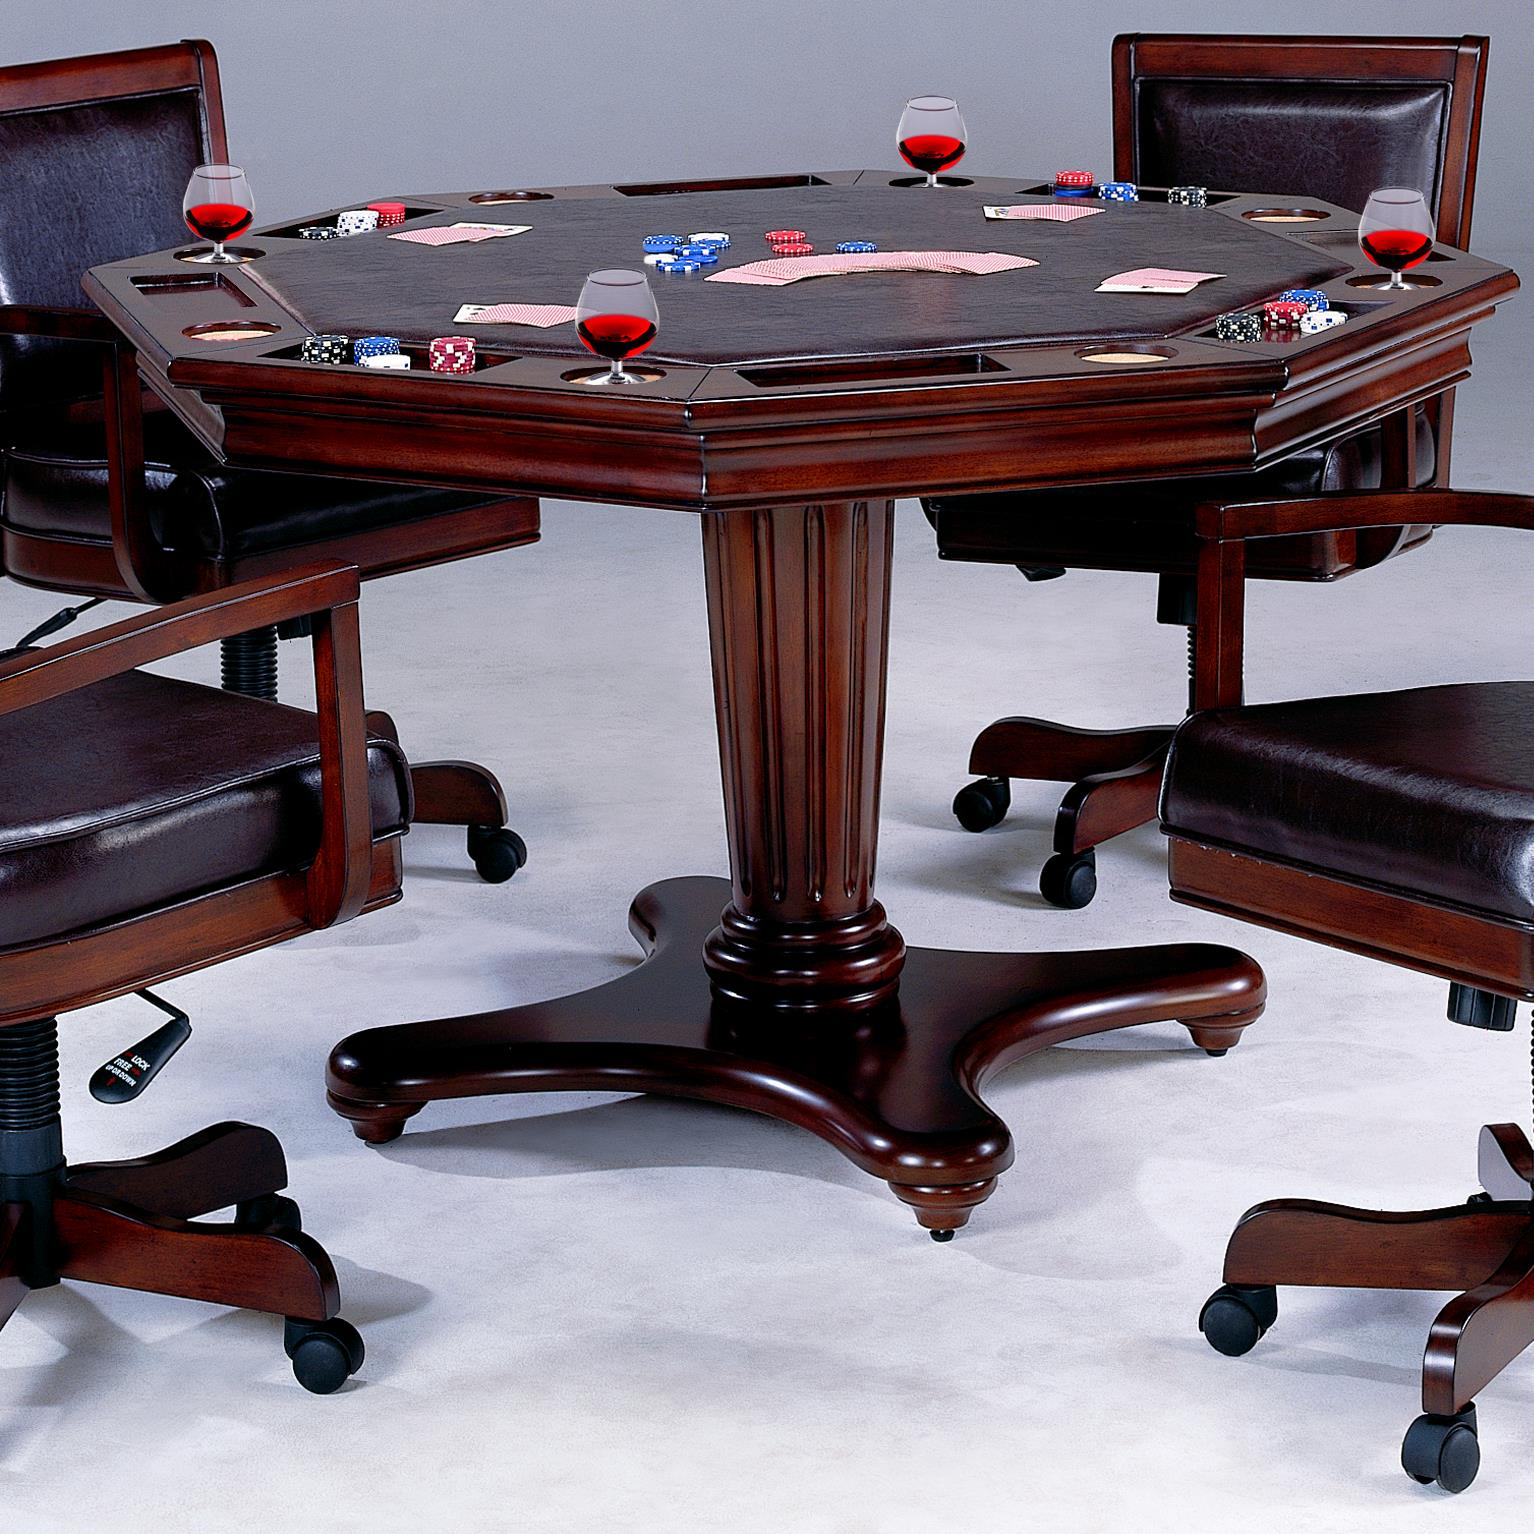 Hillsdale Ambassador 6124GTB Game Table With Separate